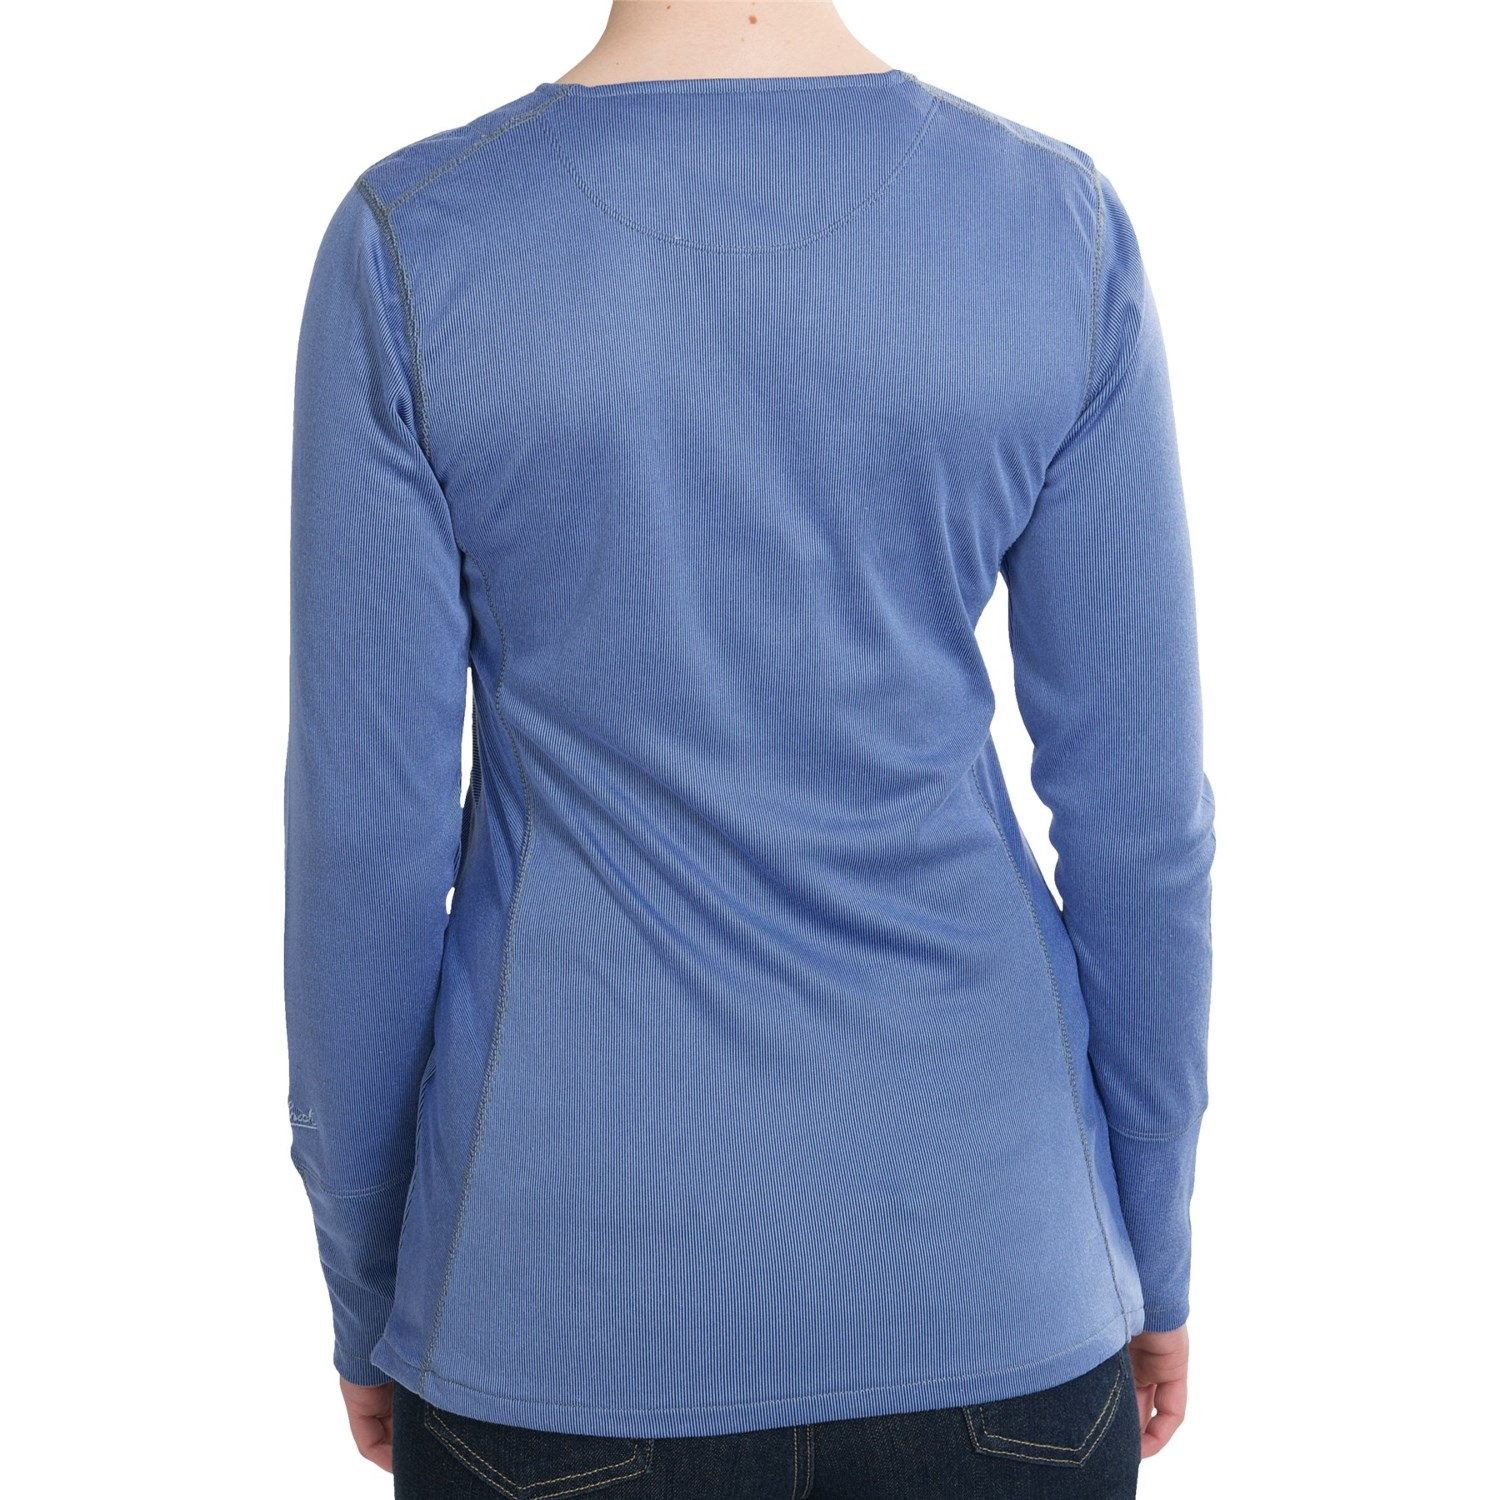 Woolrich overlook ribbed shirt for women 6930v for Ribbed long sleeve shirt